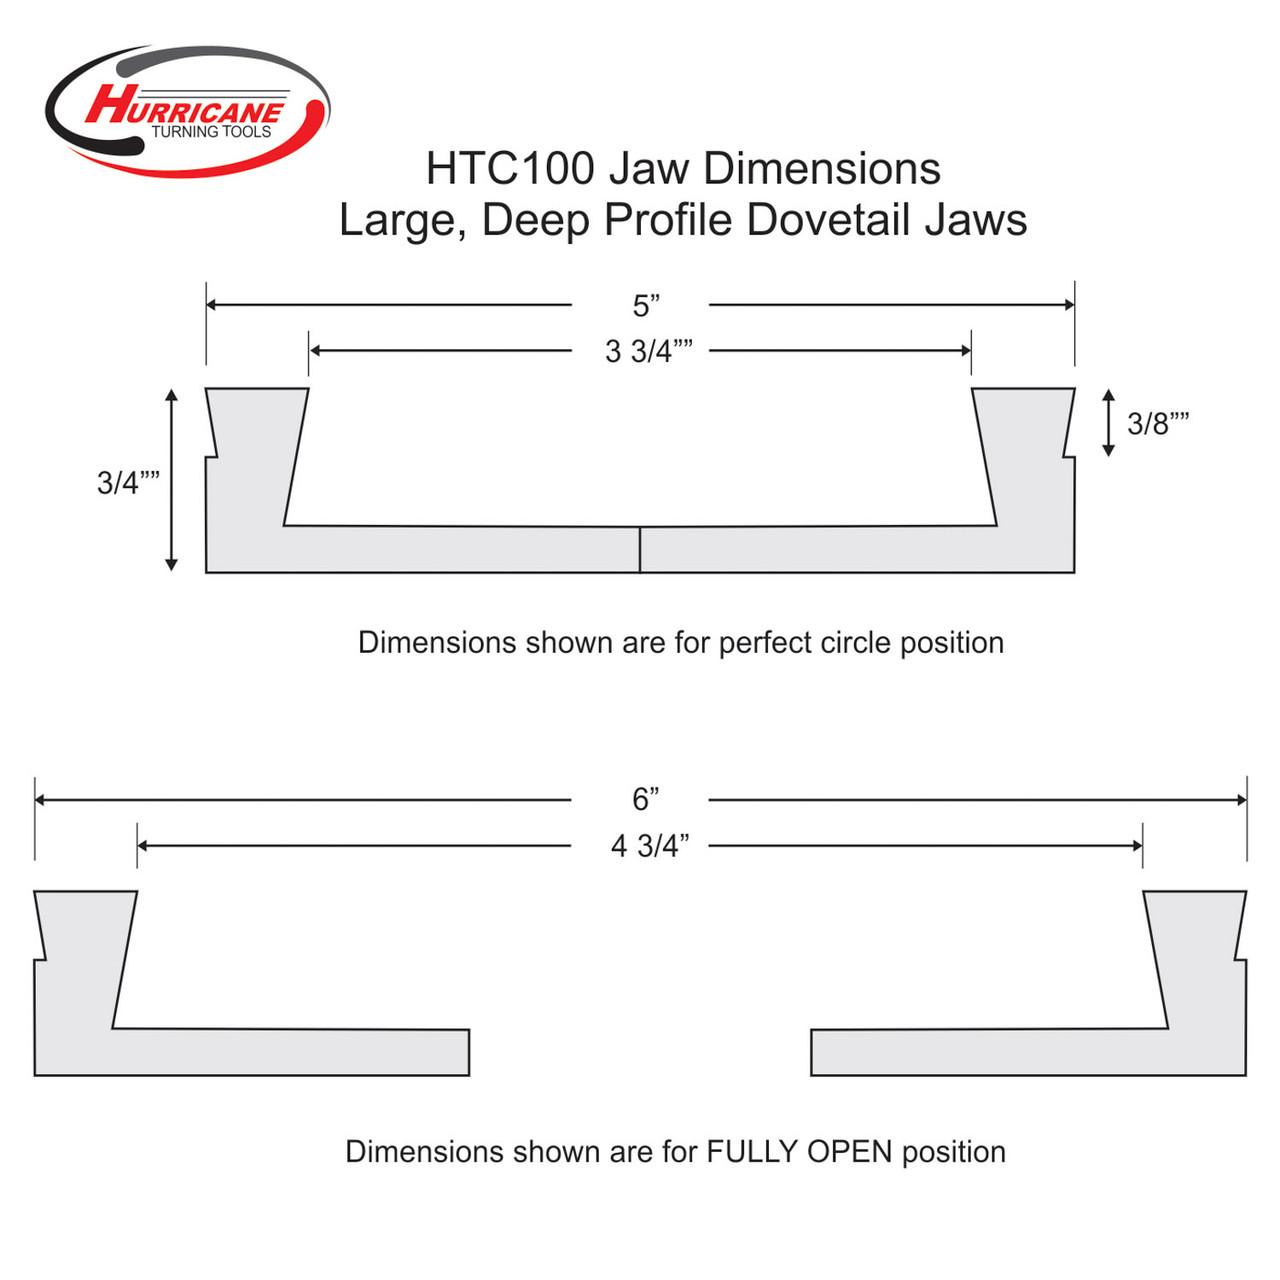 Large, Deep Profile Dovetail Jaws for the Hurricane HTC100 Woodturning on